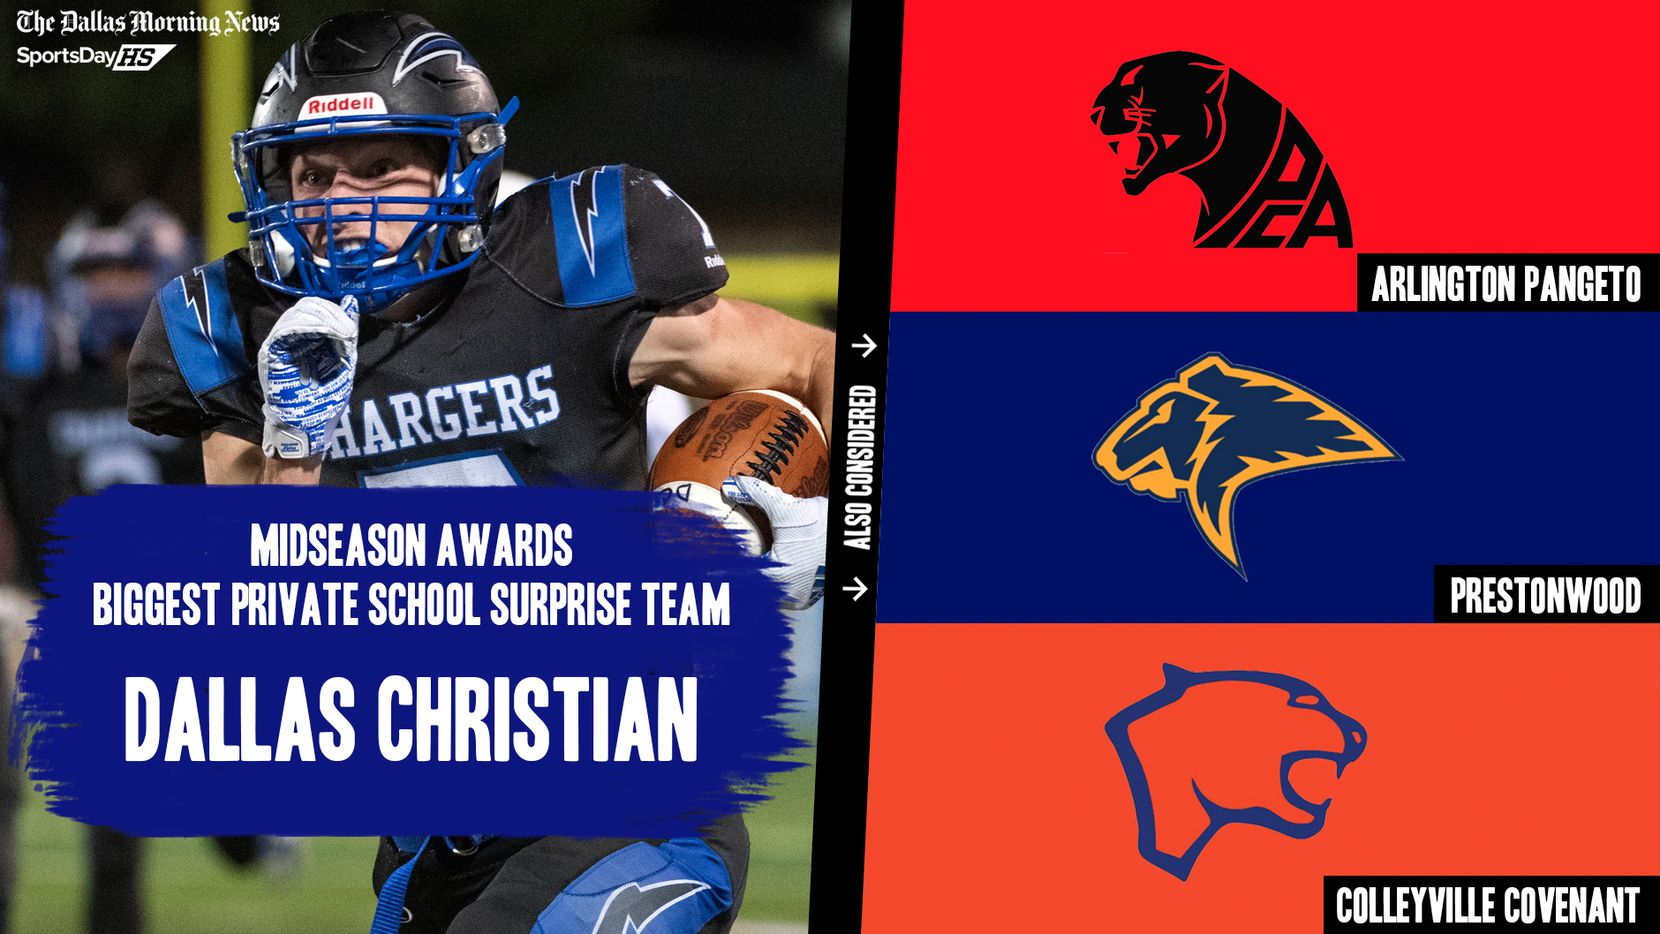 The Dallas Morning News' midseason awards for the 2020 football season: the biggest private school surprise teams.